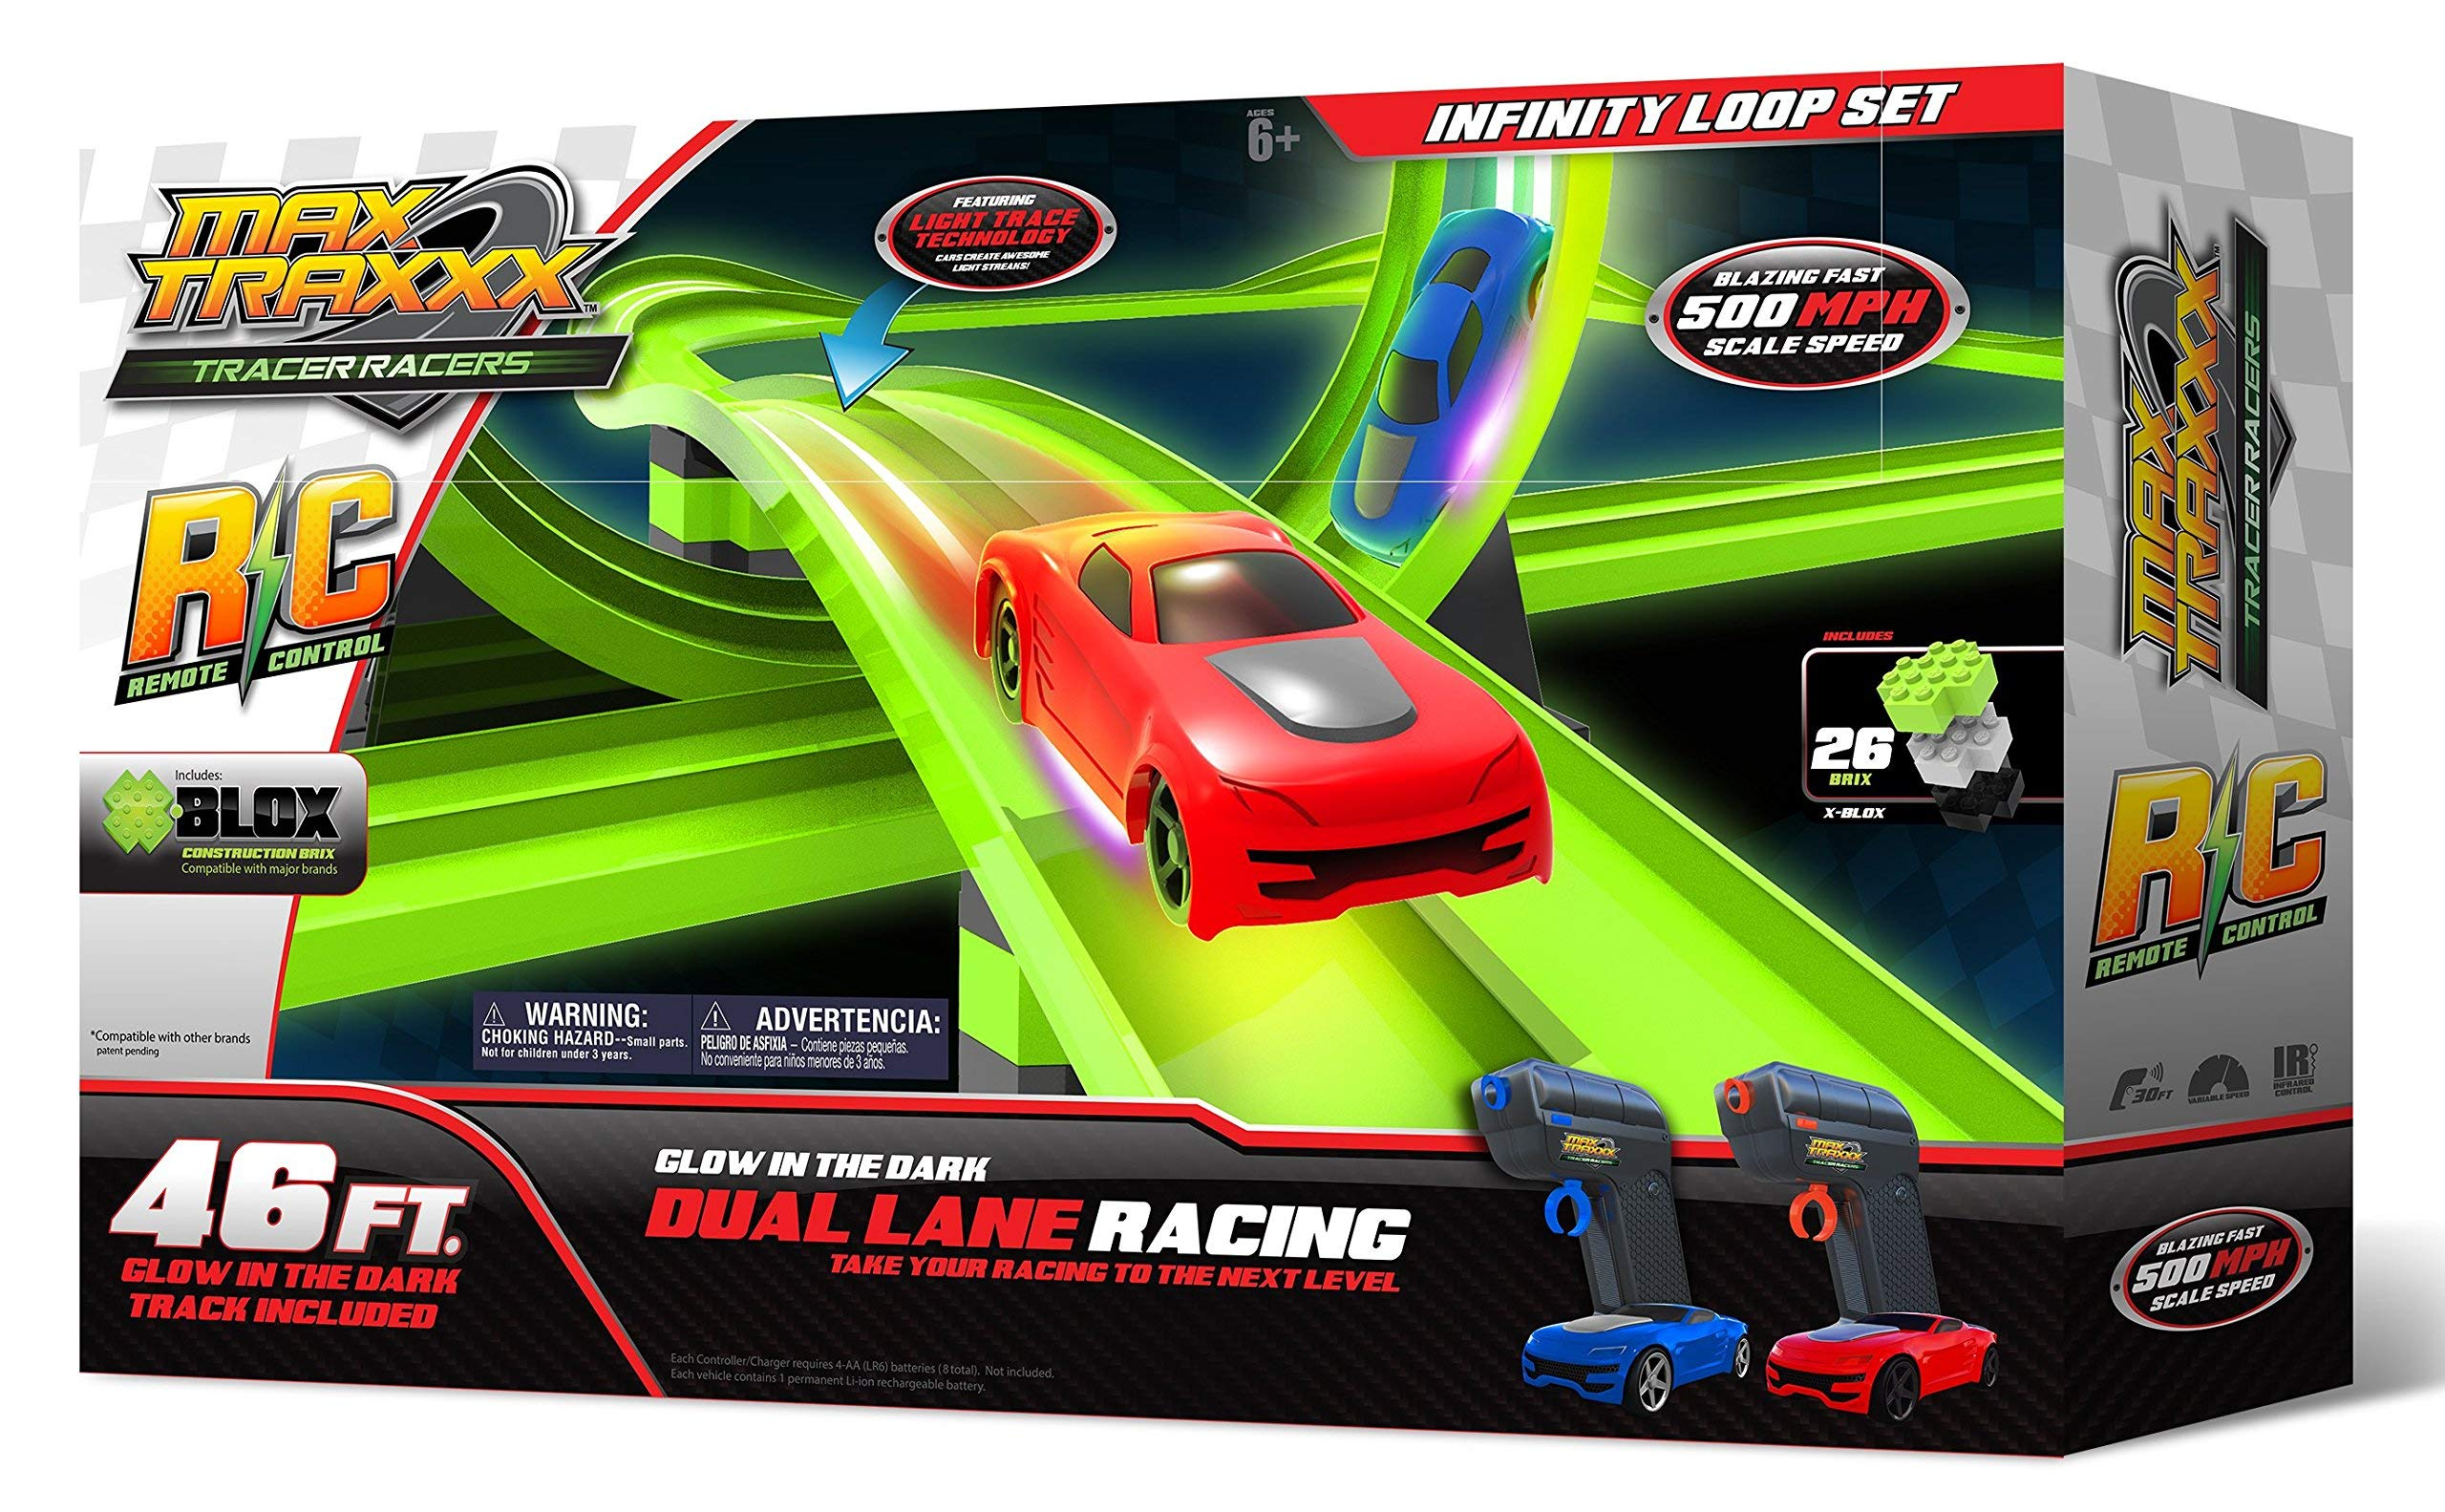 Max Traxxx R/C Award Winning Tracer Racers High Speed Remote Control Infinity Loop Track Set with Two Cars for Dual Racing by Max Traxxx